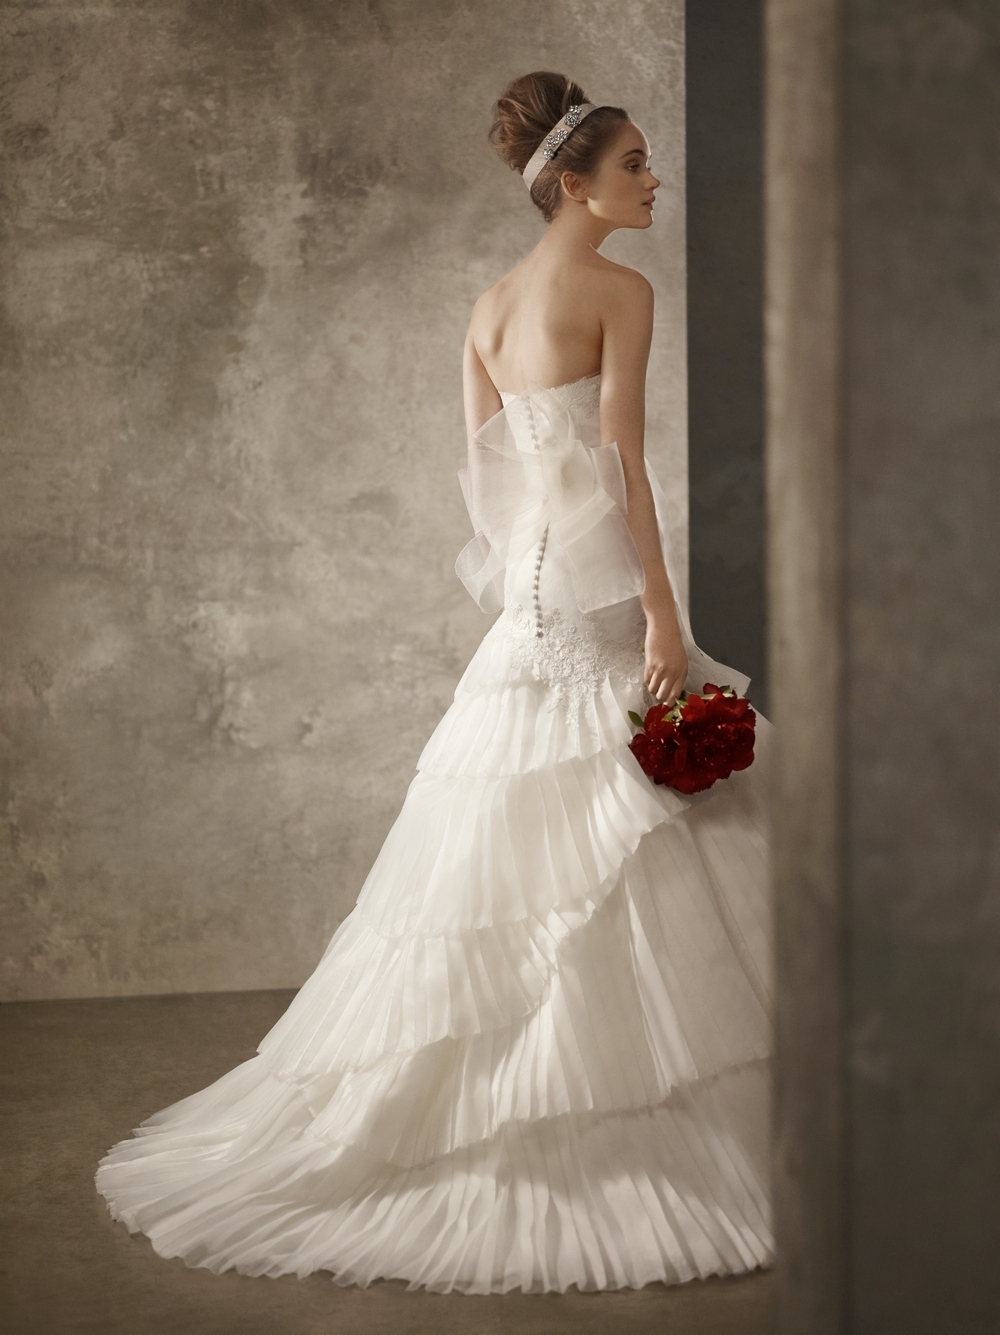 2011-wedding-dresses-vera-wang-white-vw351020-strapless-white-lace-a-line-gown.full